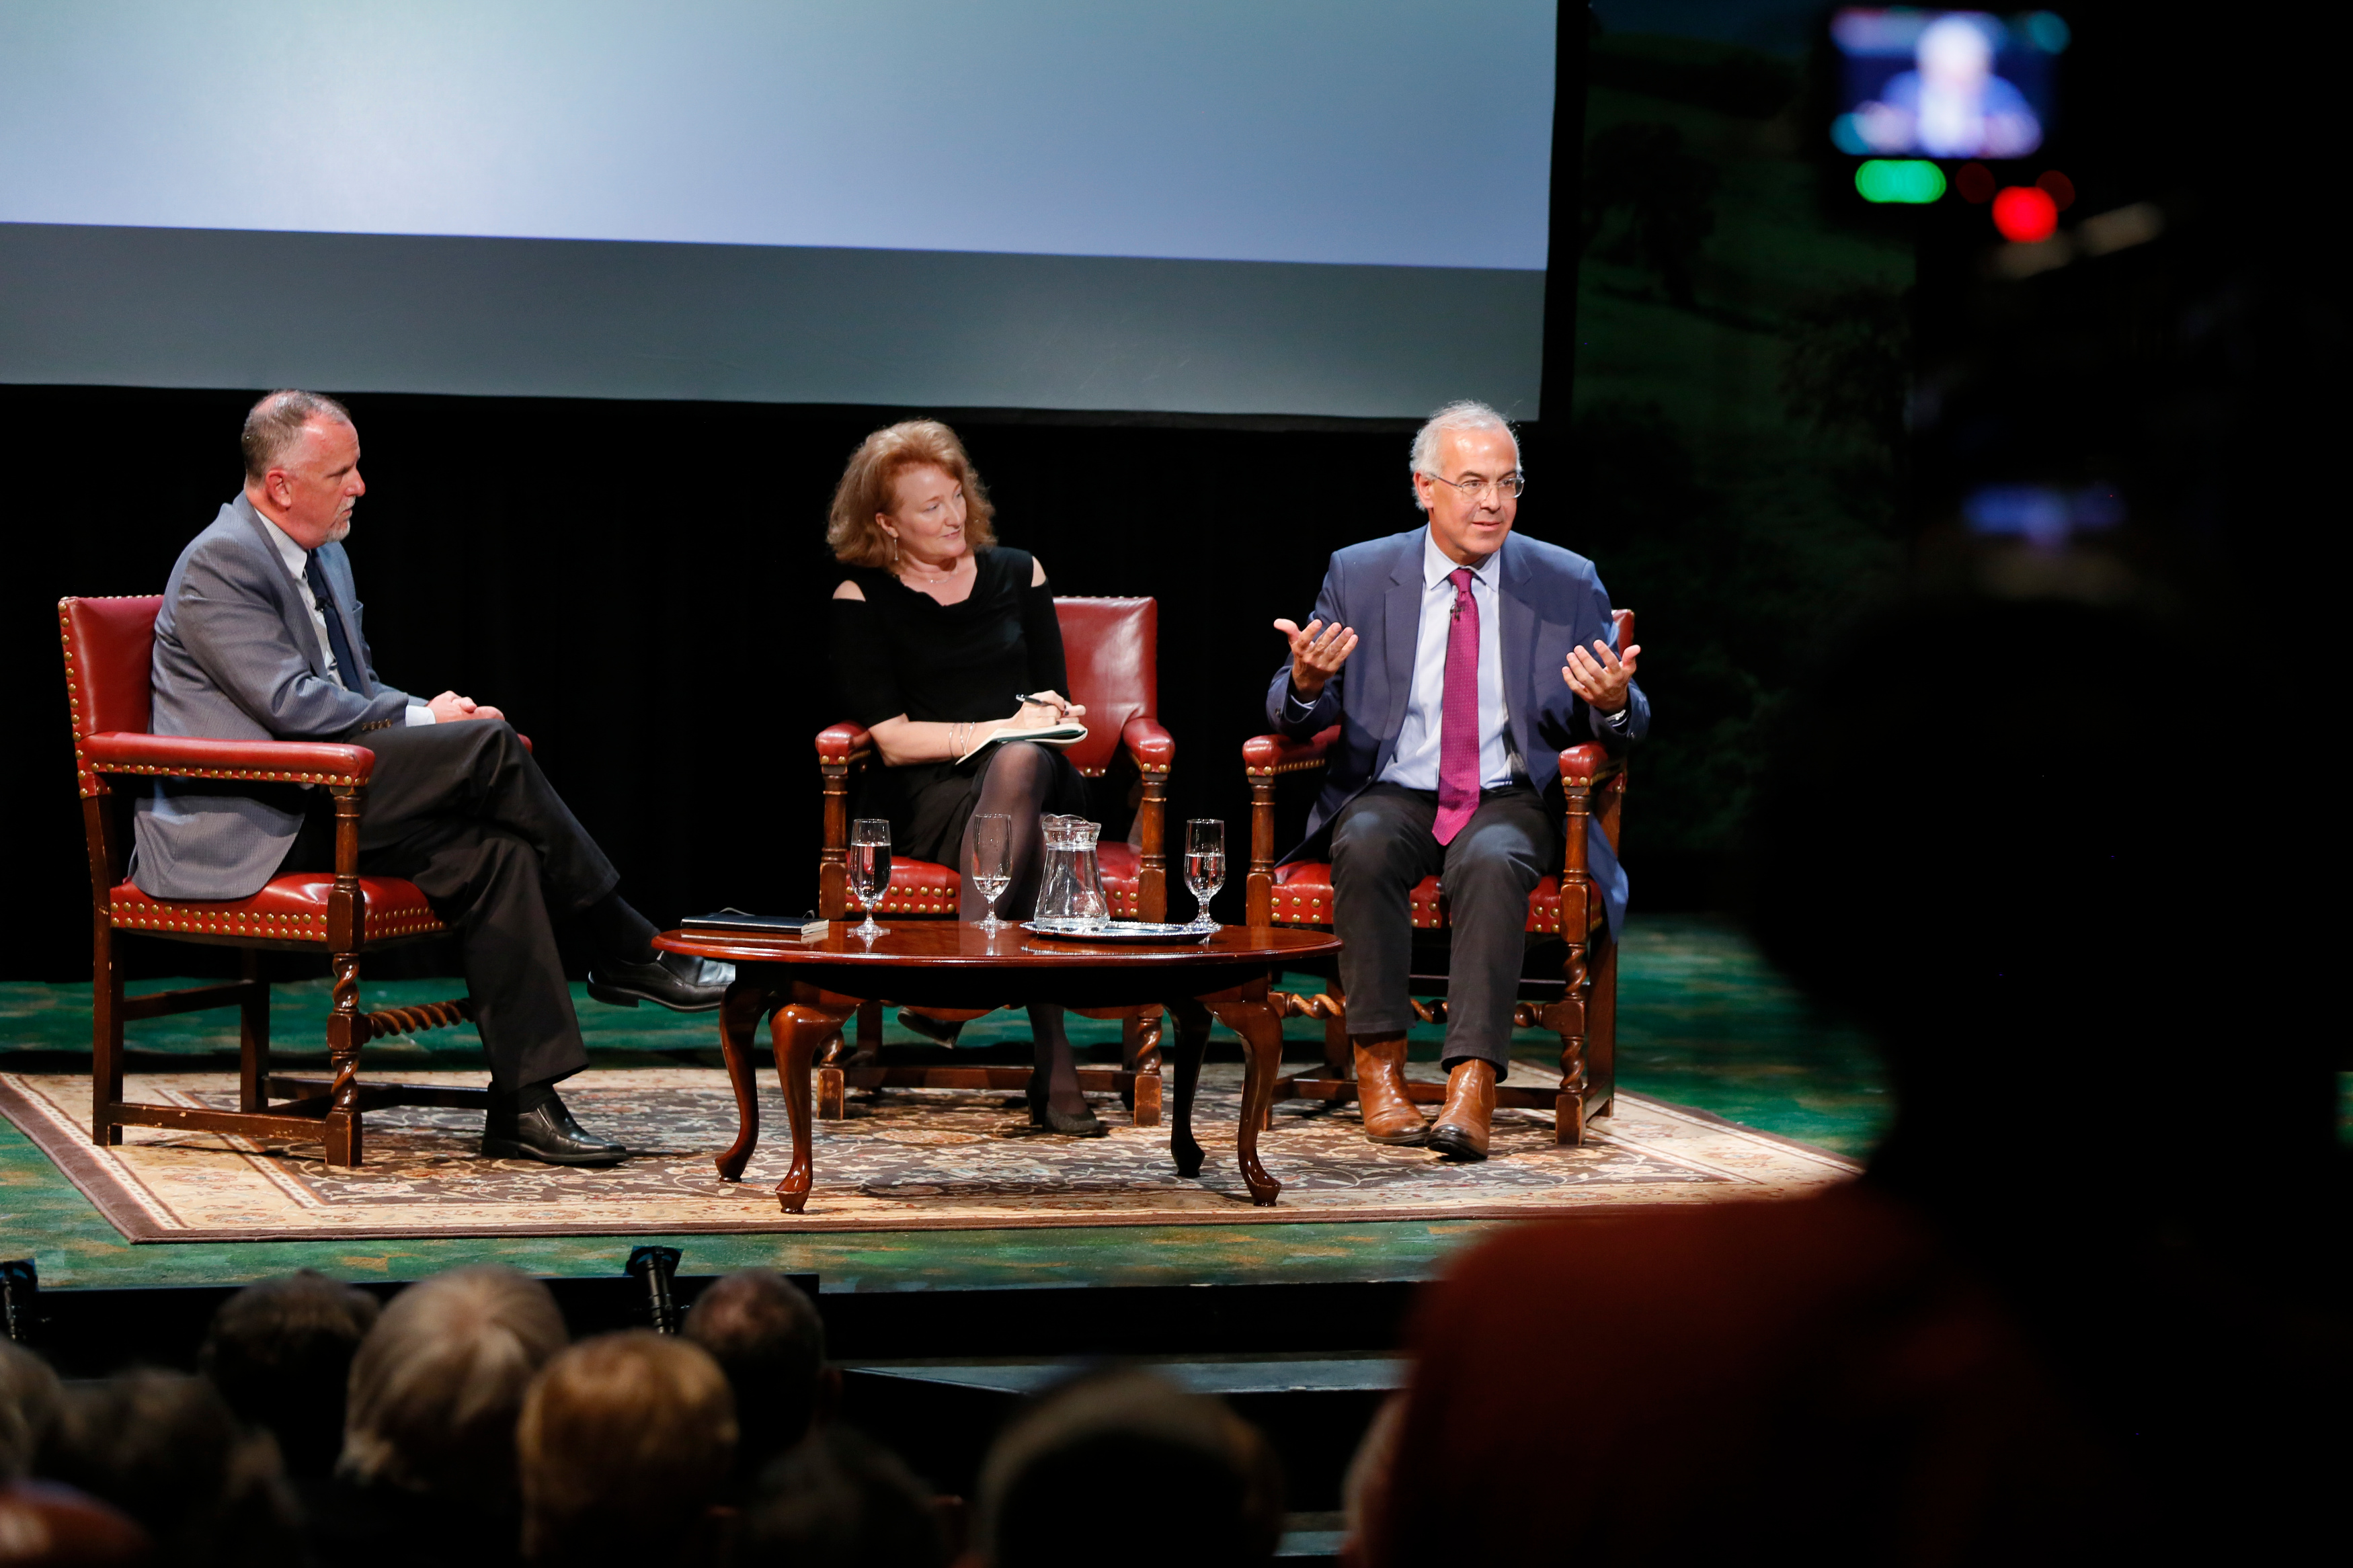 Michael Lynch, left, director of UConn's Humanities Institute, facilitates the panel discussion with Krista Tippet of NPR and David Brooks of the New York Times. (Photo by Garrett Hubbard, GH studios)